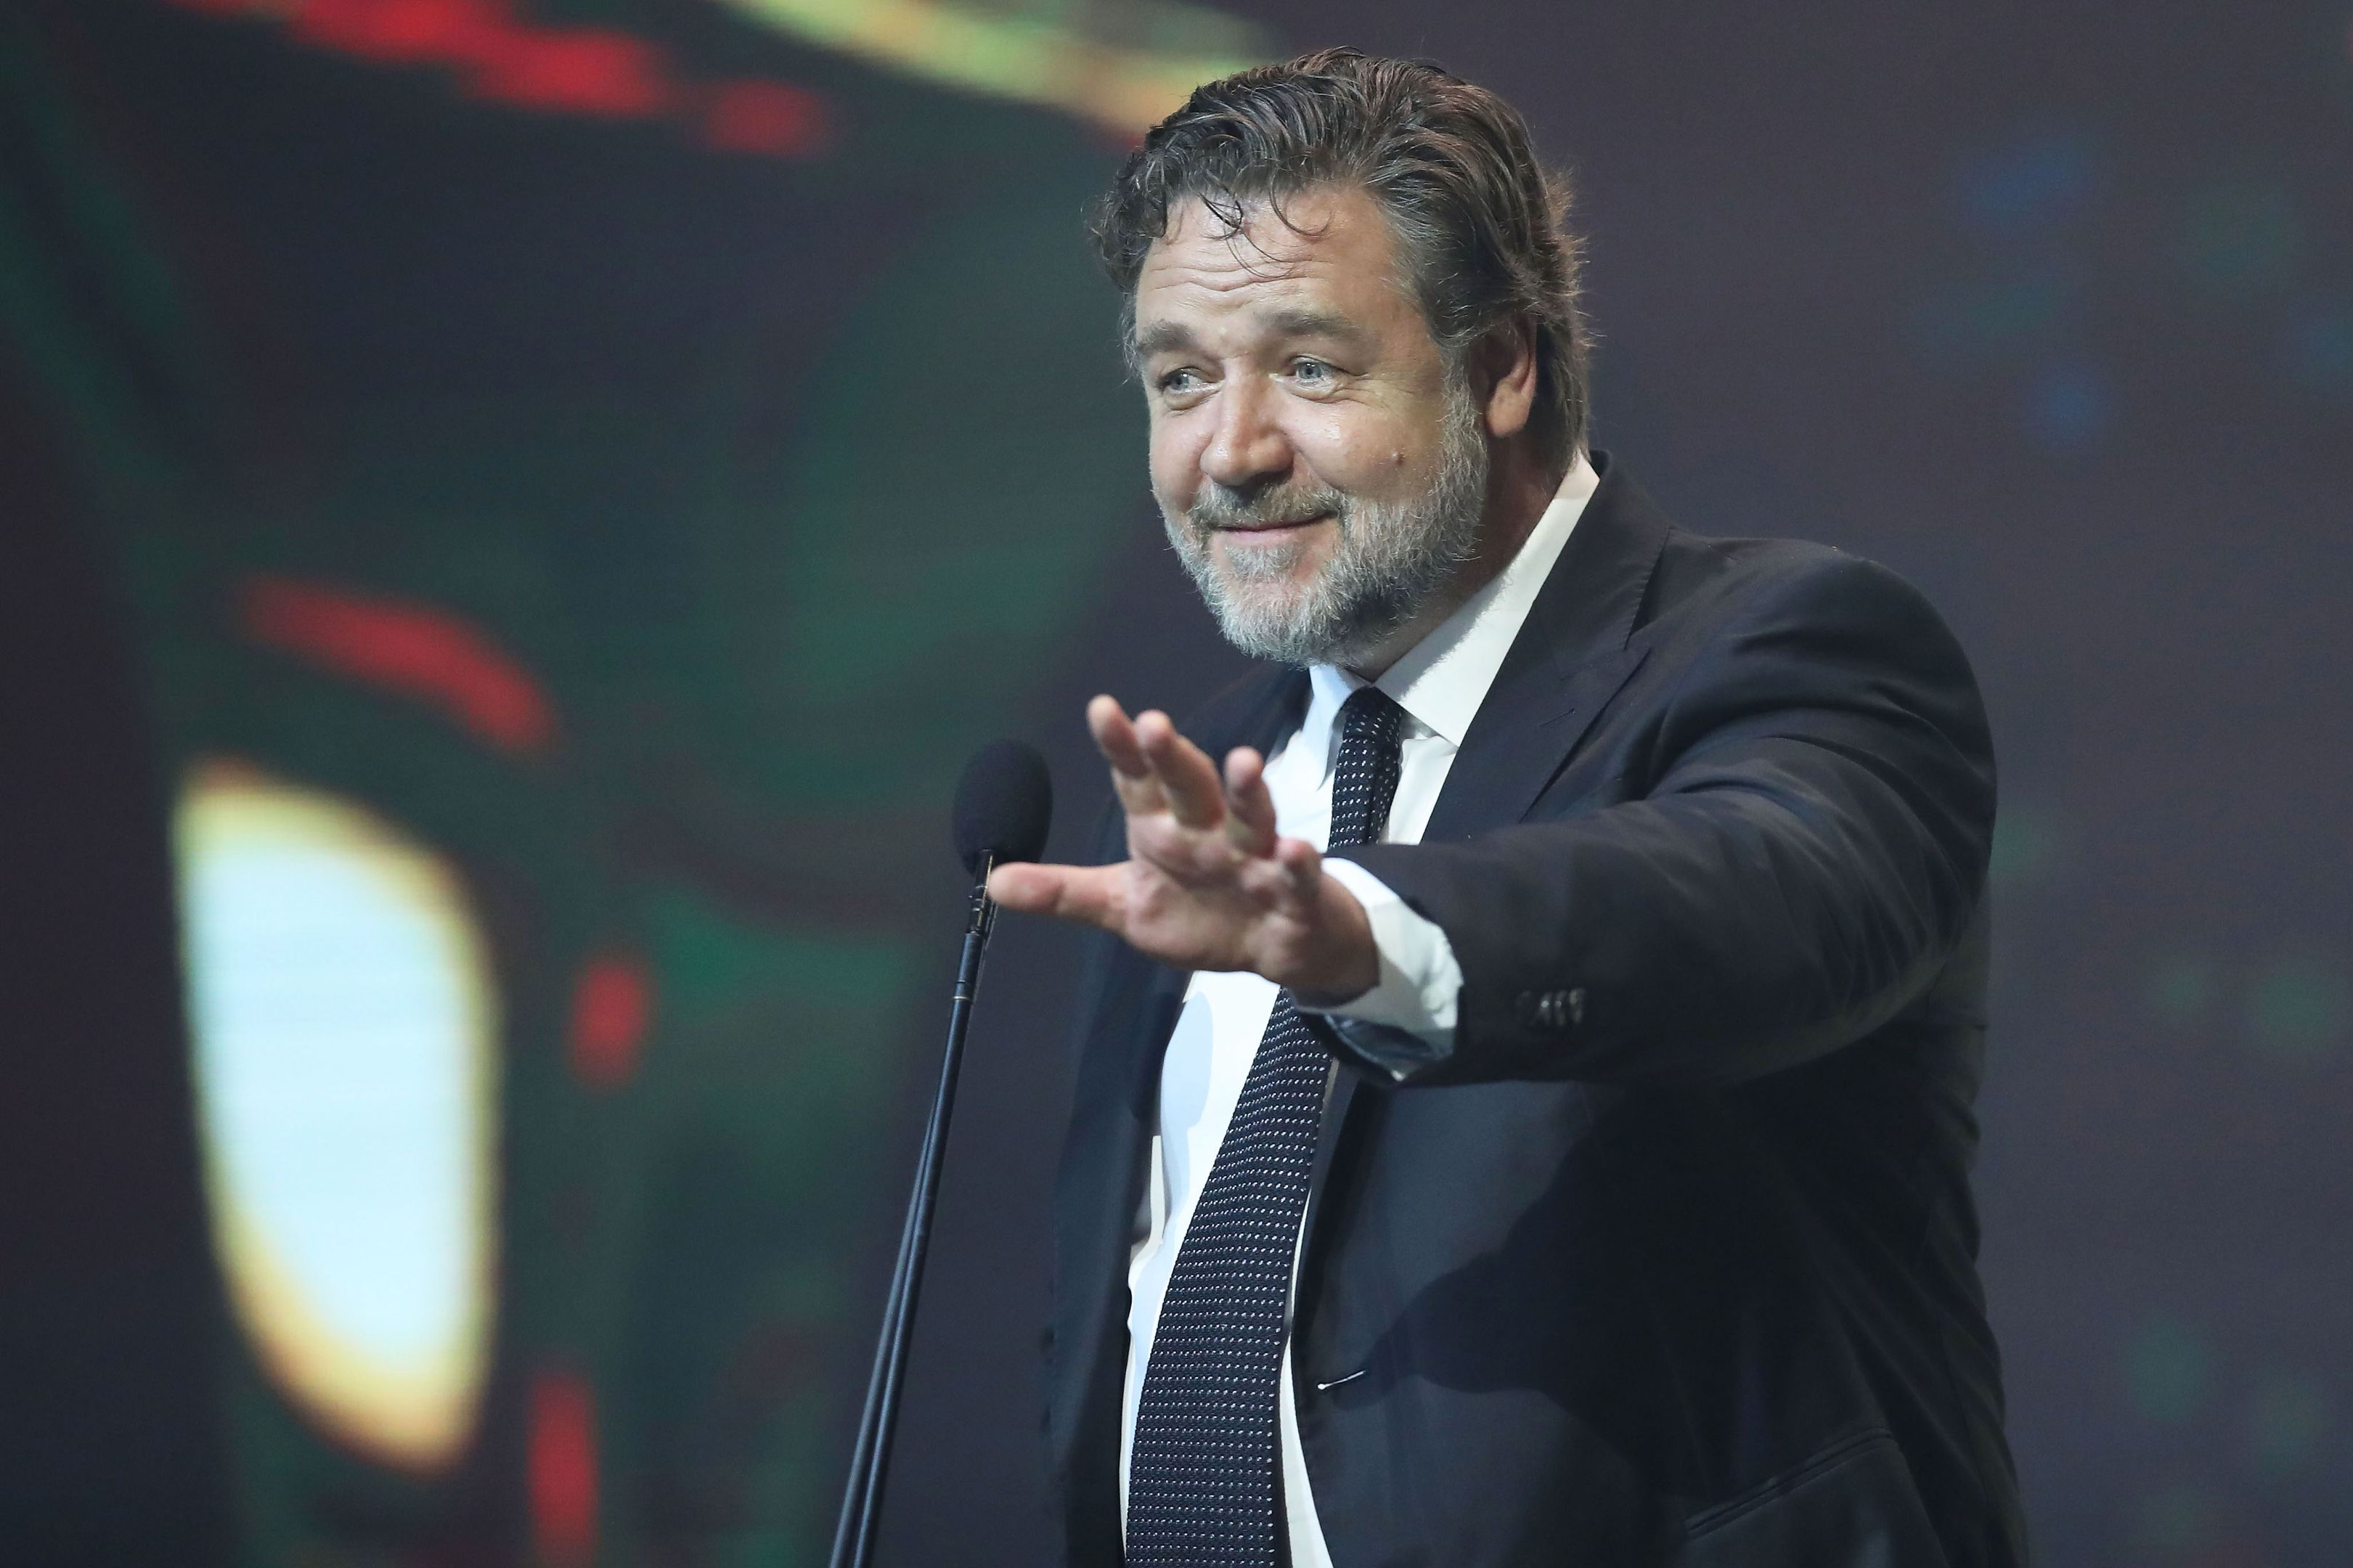 Actor Jacqui McKenzie defends Russell Crowe after he jokes about sodomising her